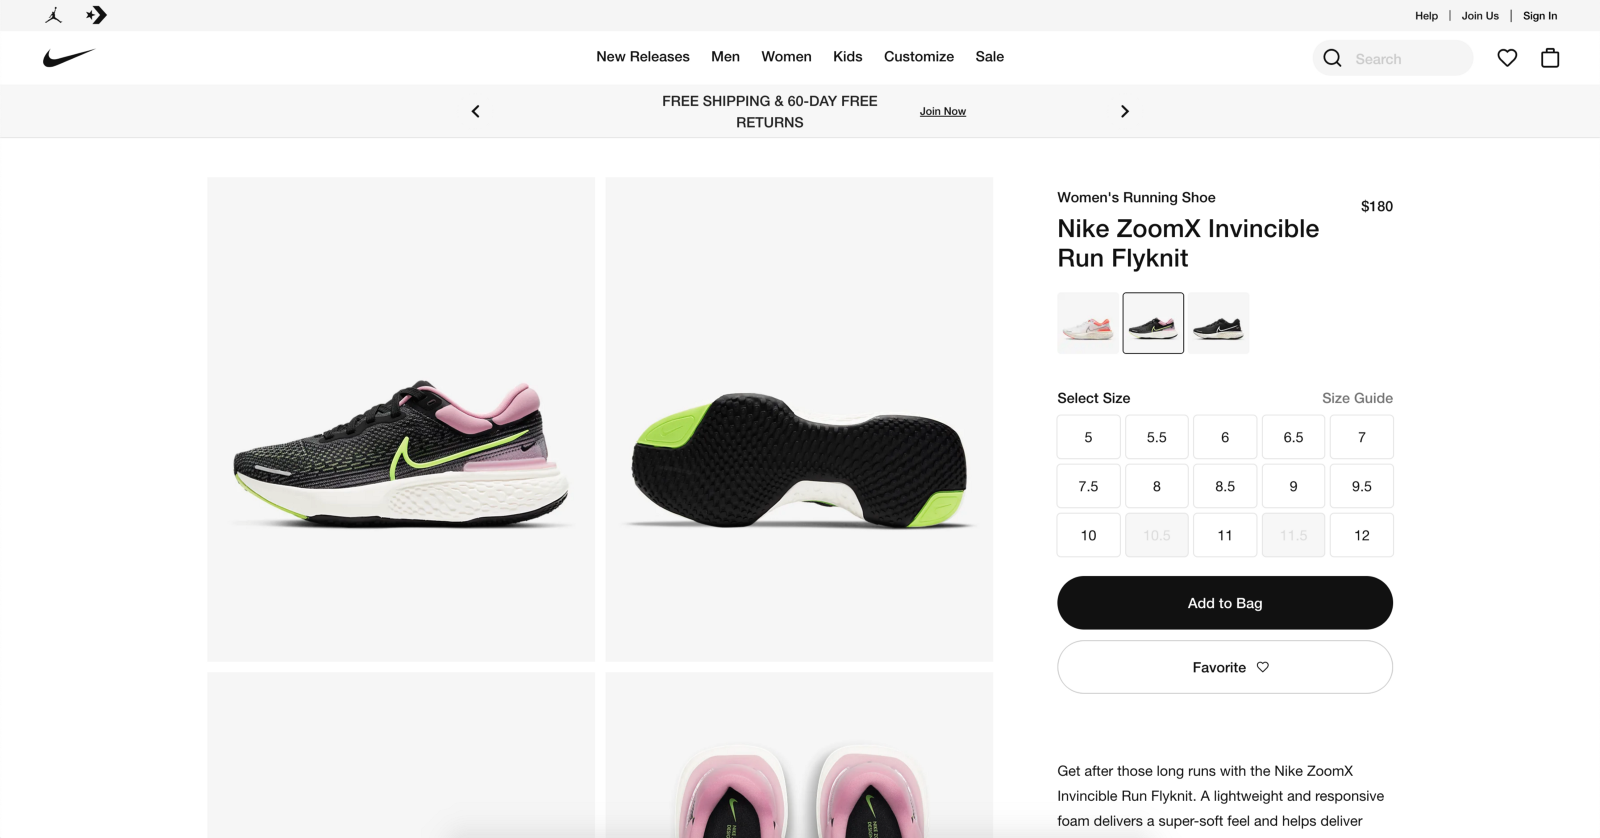 Nike.com is an example of a B2B business model